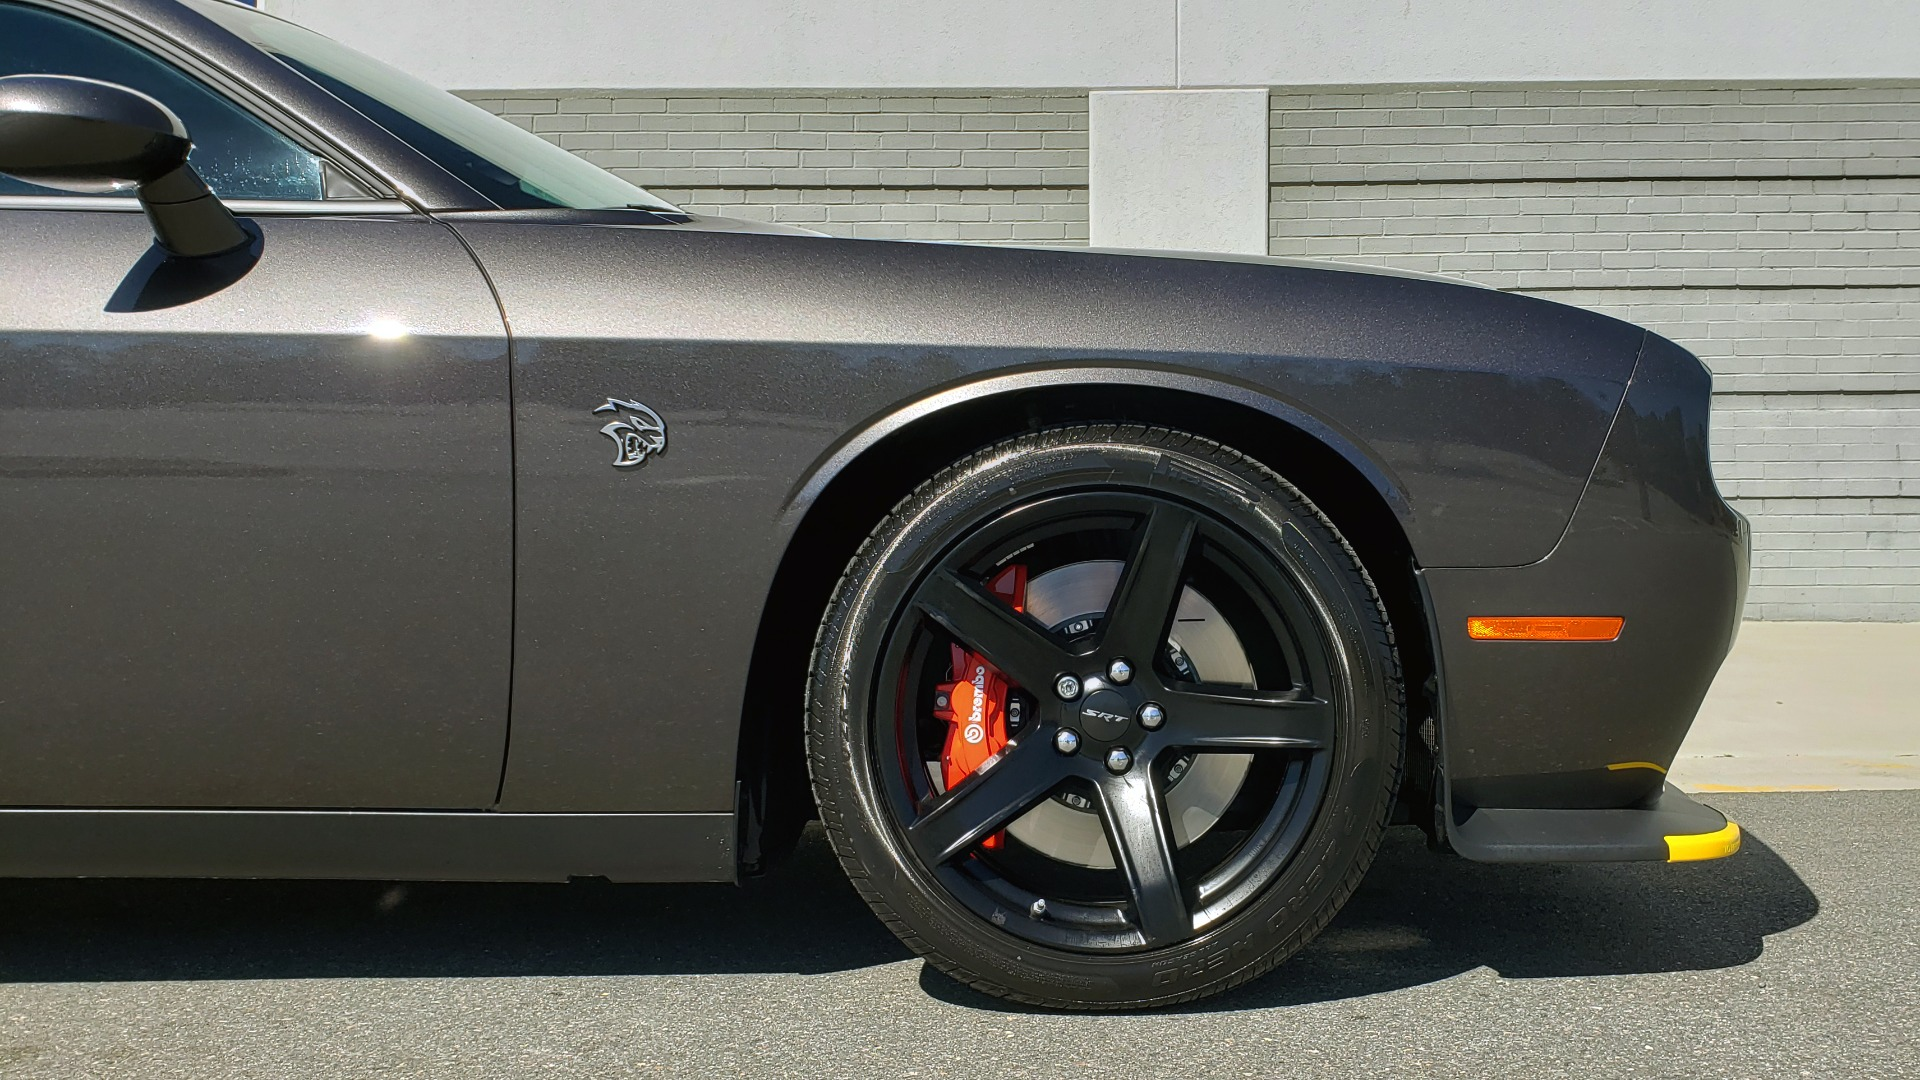 Used 2020 Dodge CHALLENGER SRT HELLCAT (717HP) / NAV / AUTO / CLOTH / REARVIEW / LOW MILES for sale $64,999 at Formula Imports in Charlotte NC 28227 80